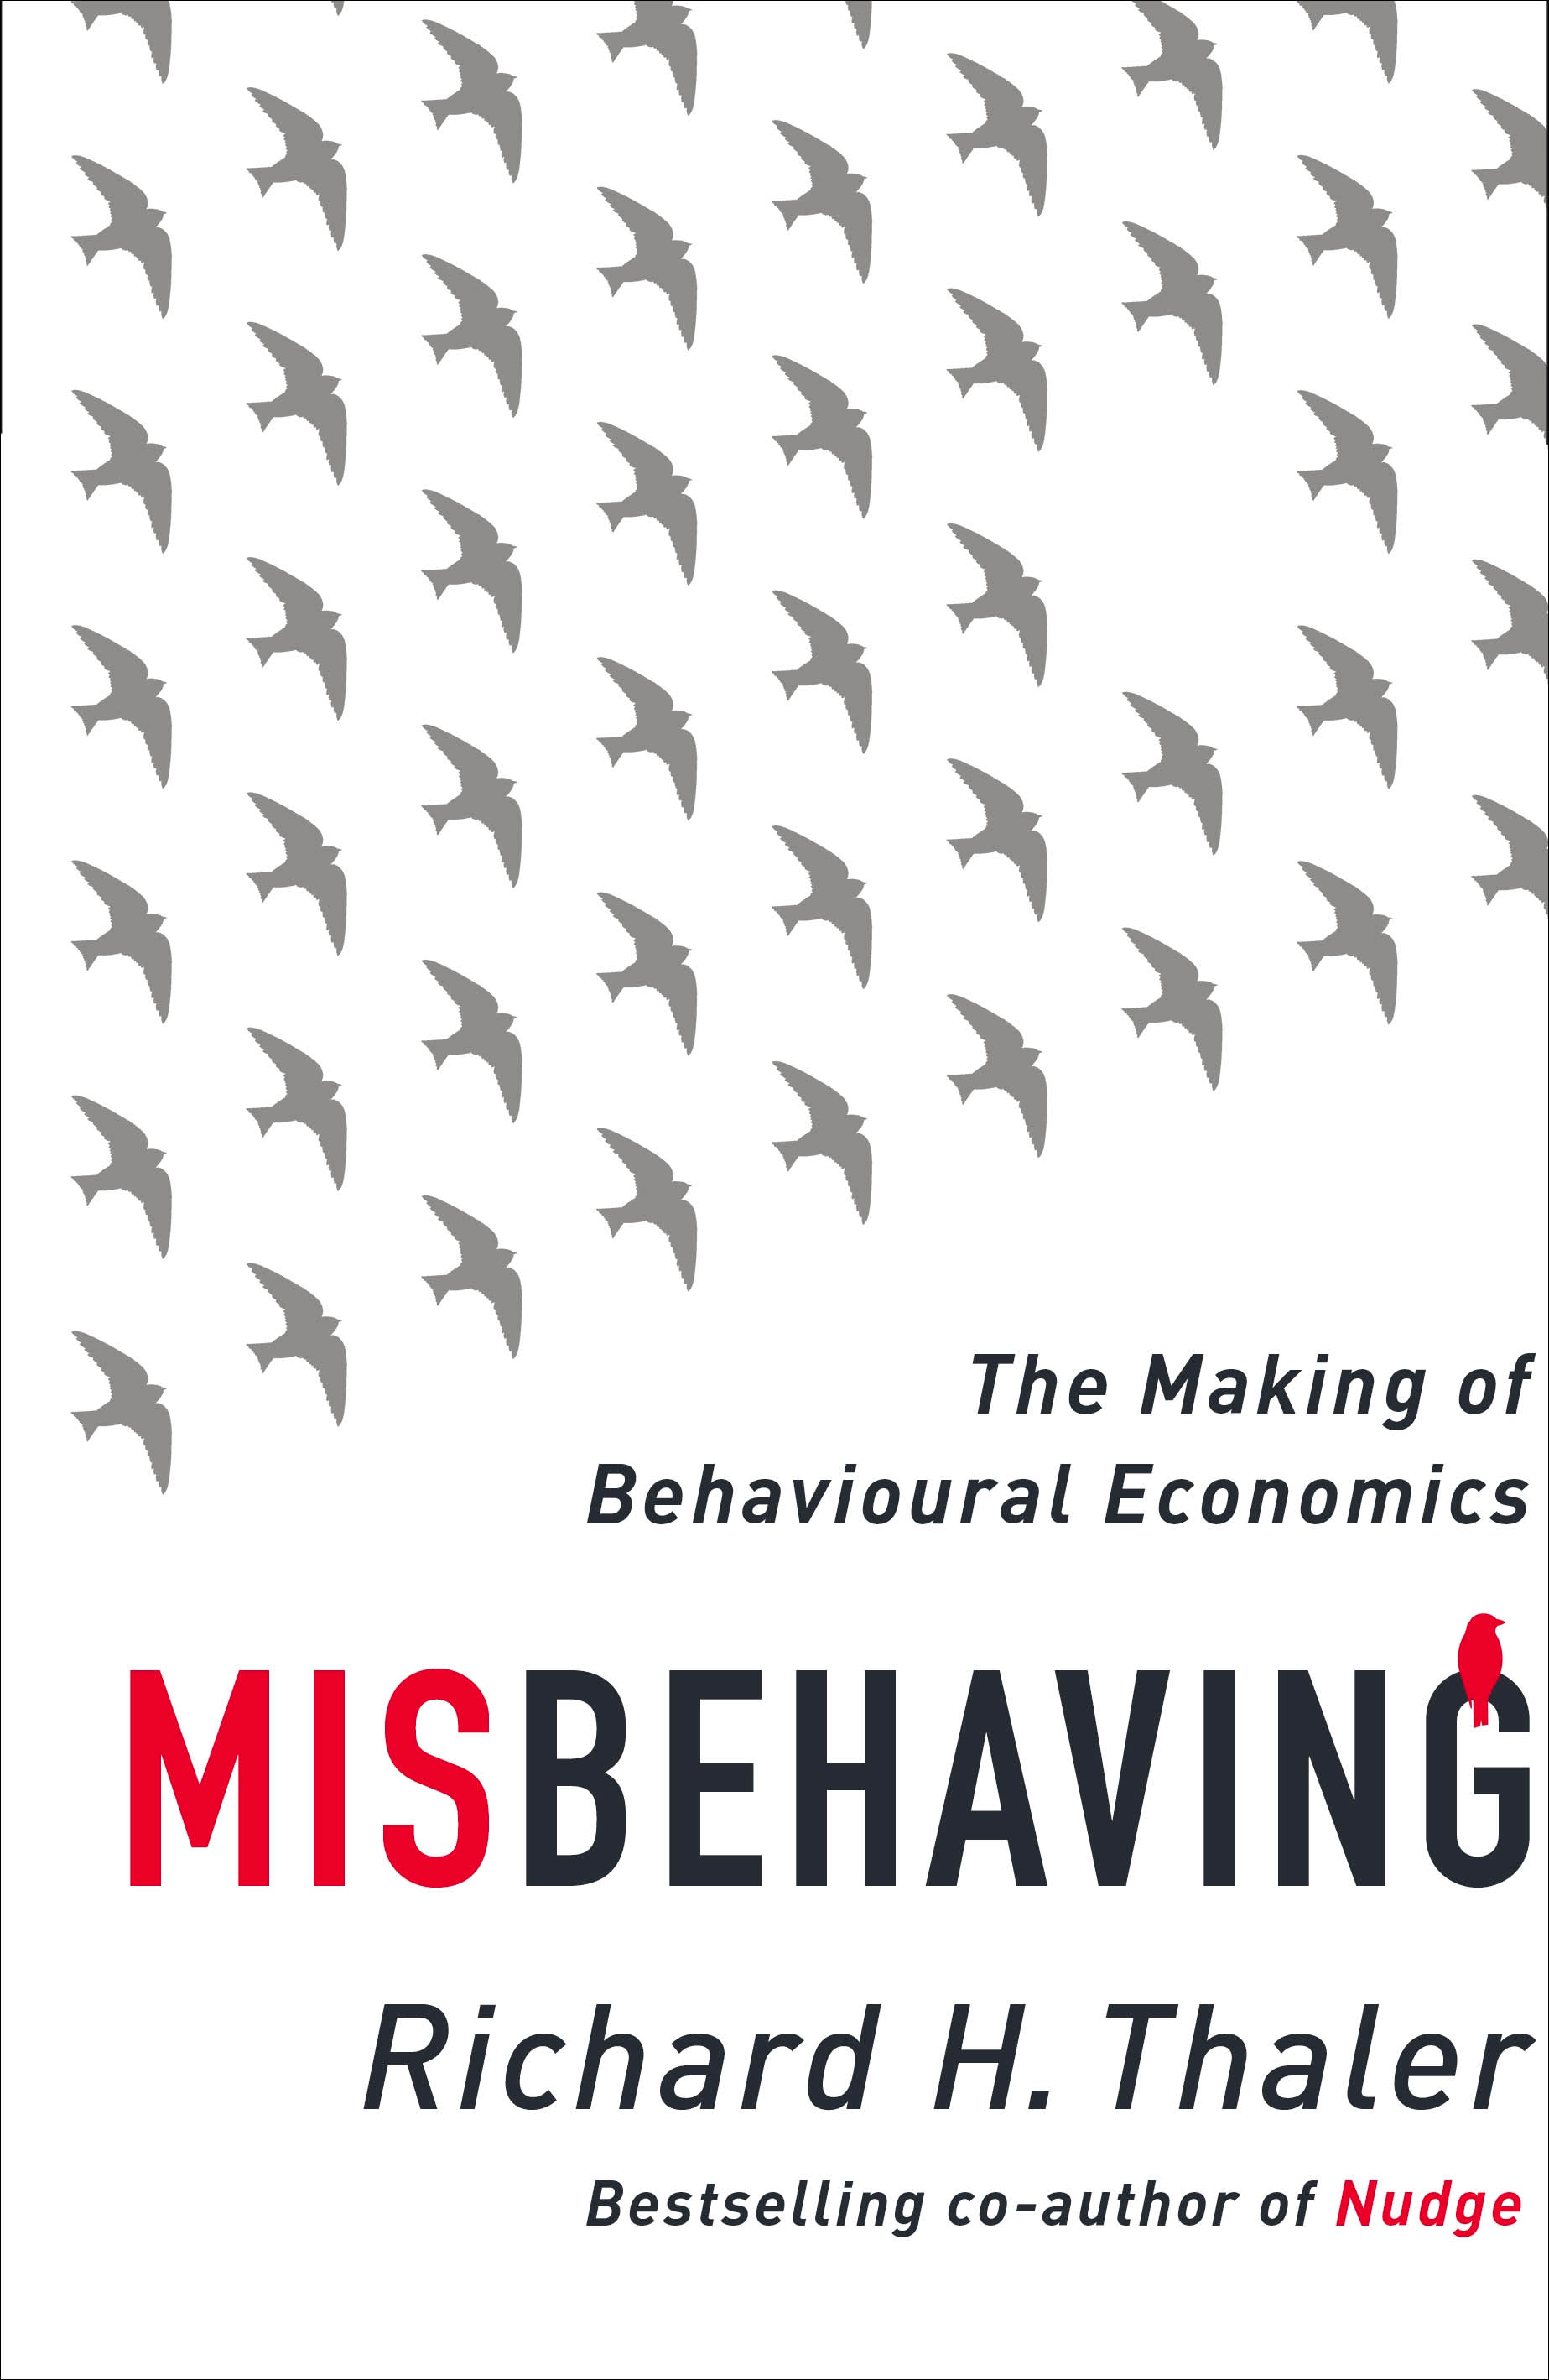 Misbehaving by Richard Thaler